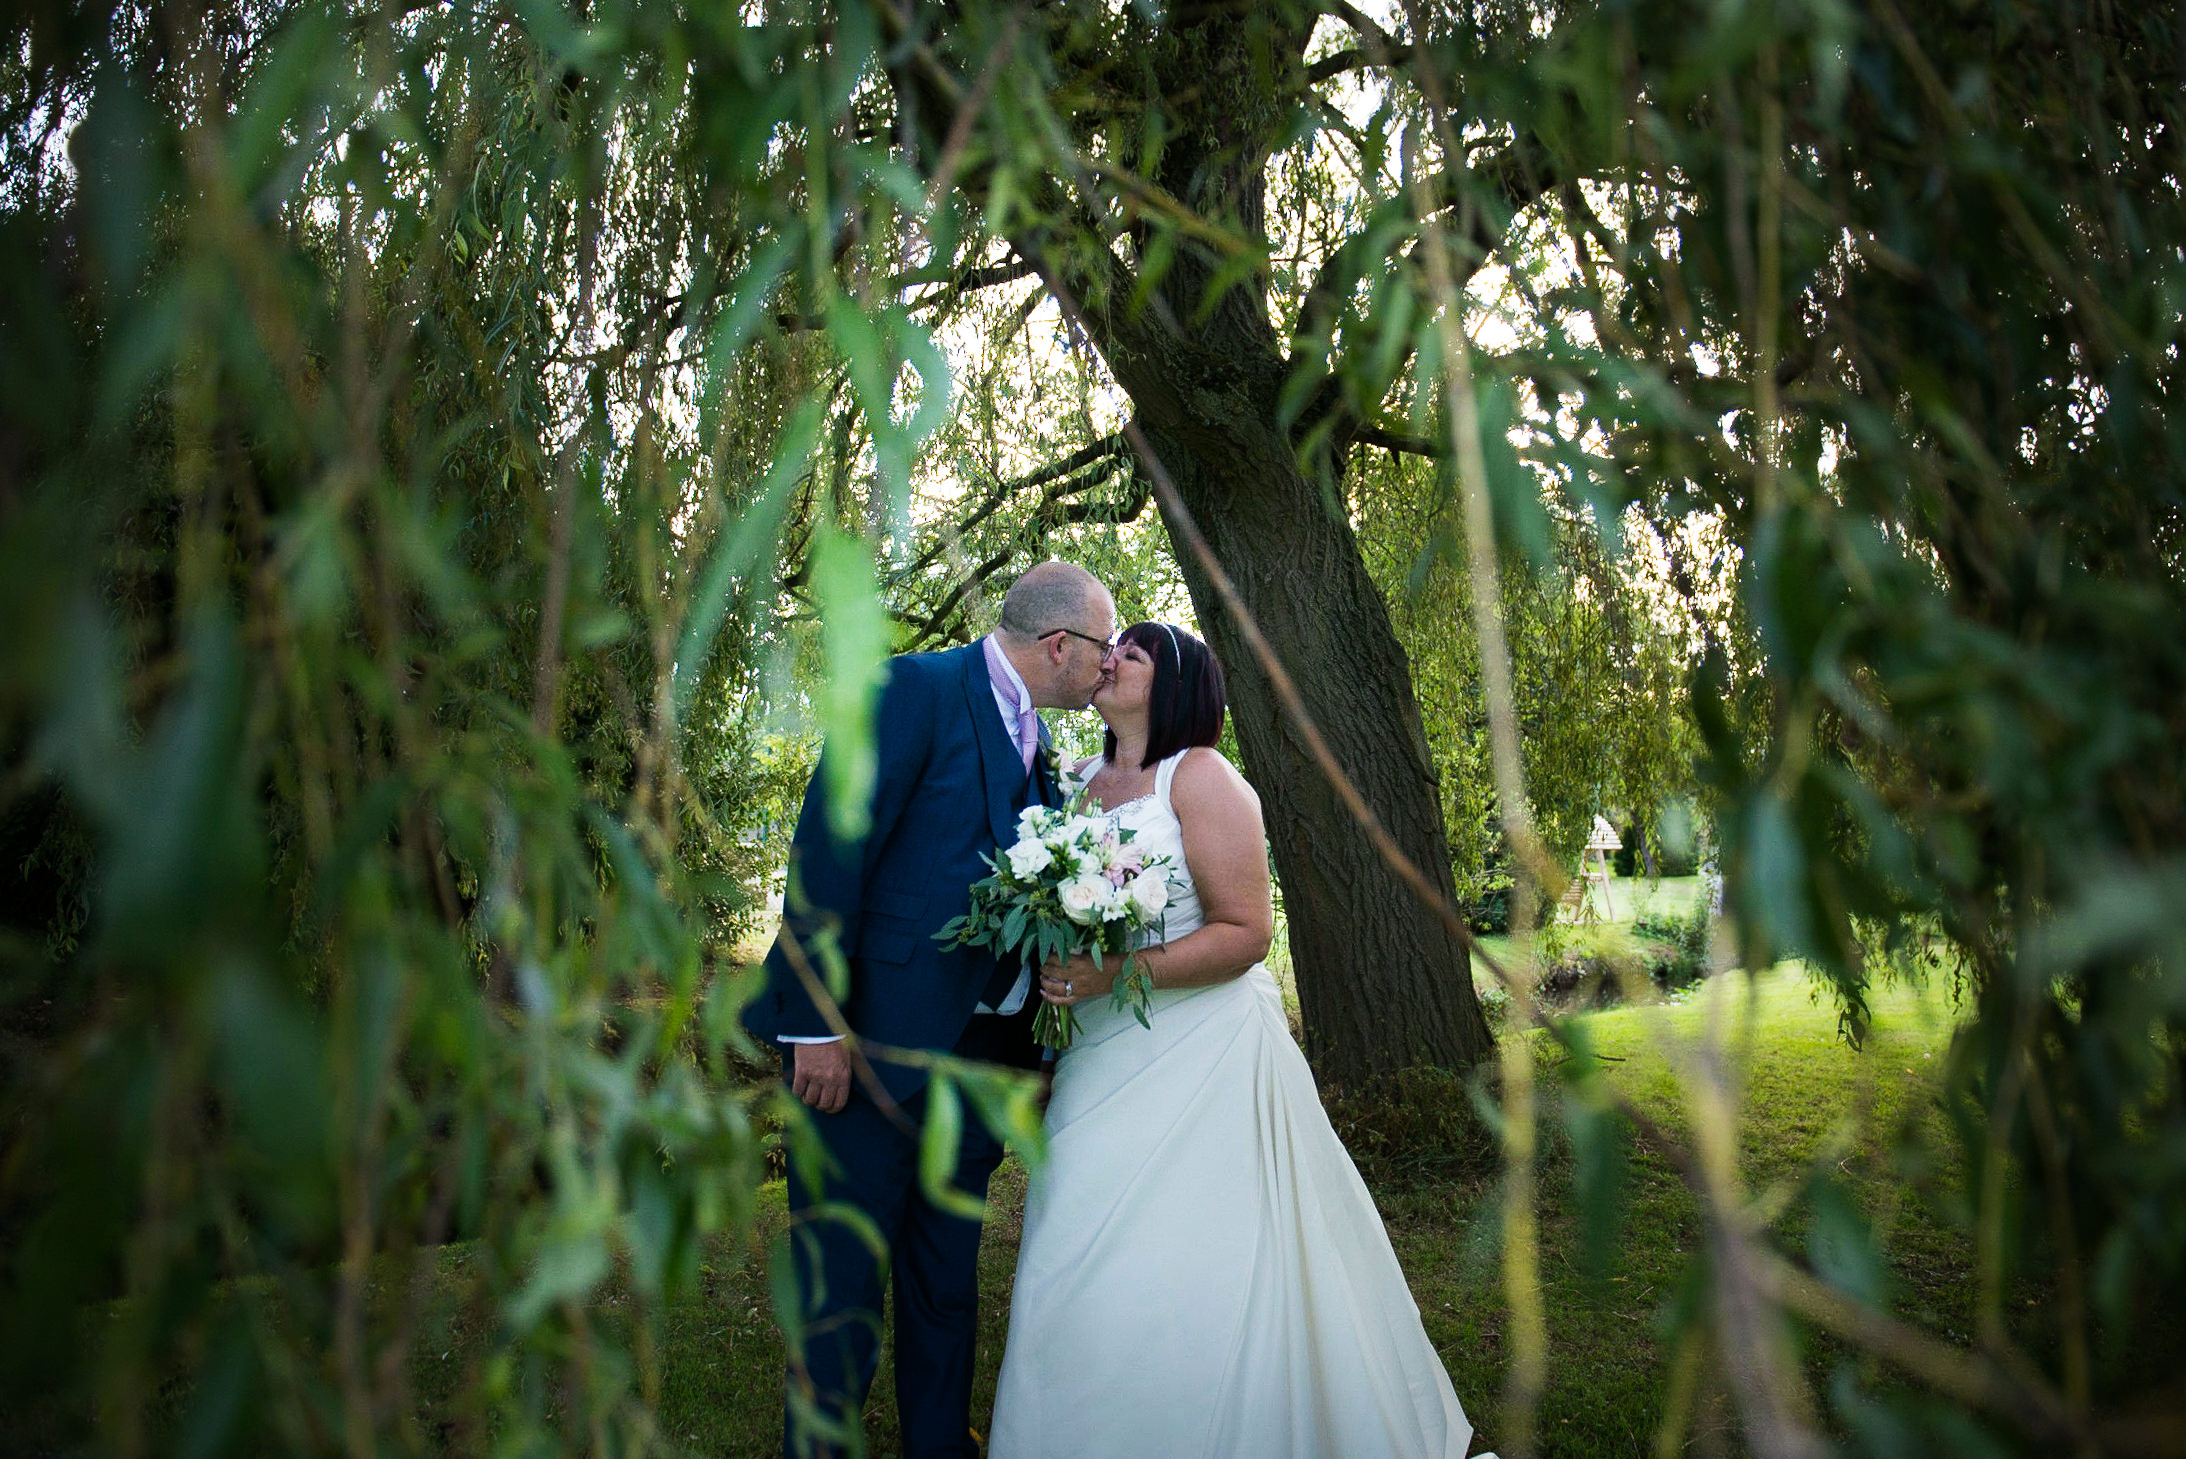 Bride and groom, Riverside wedding venue